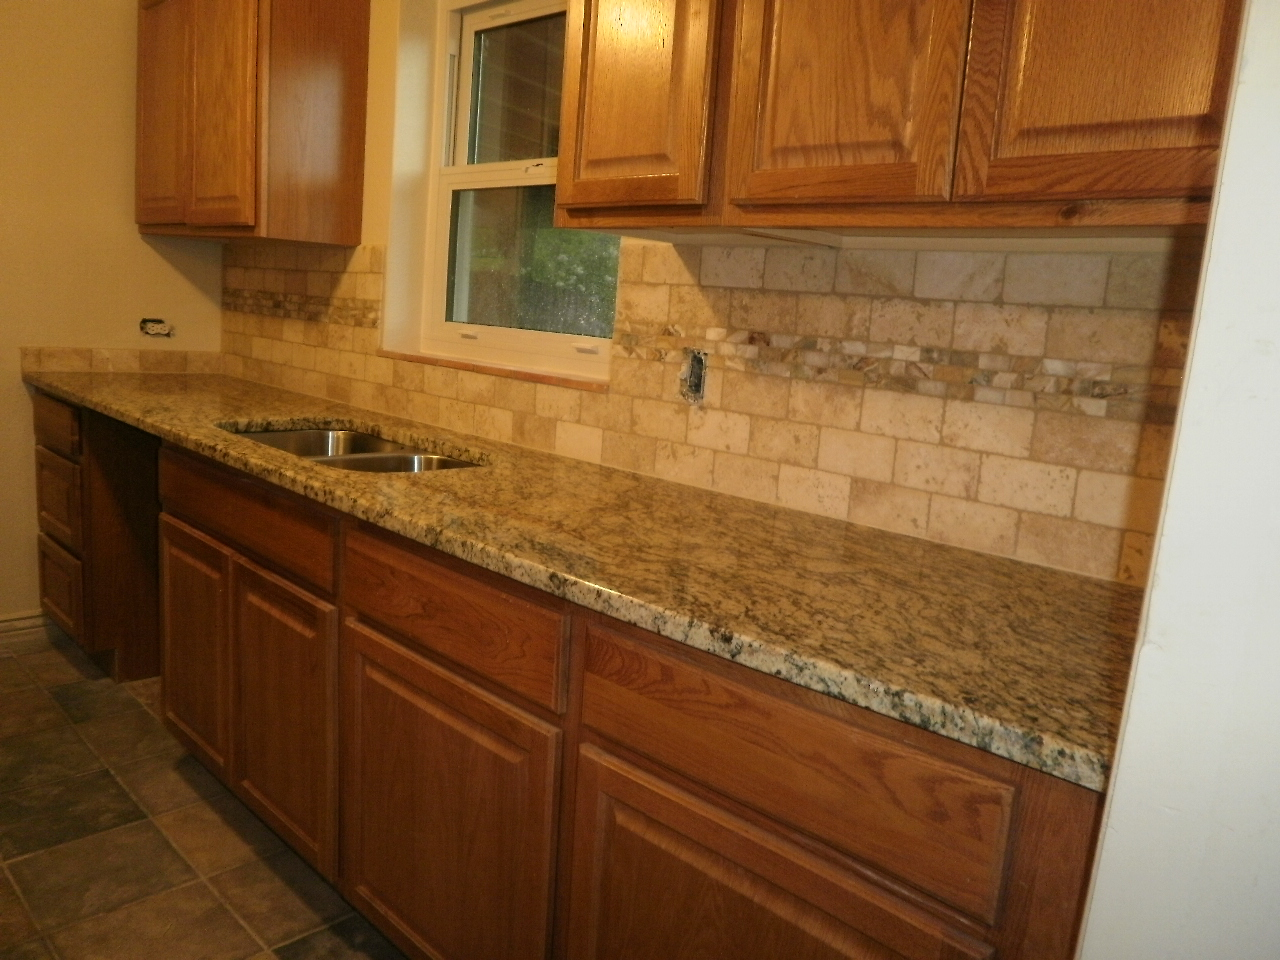 Santa cecilia granite backsplash ideas for Back splash tile